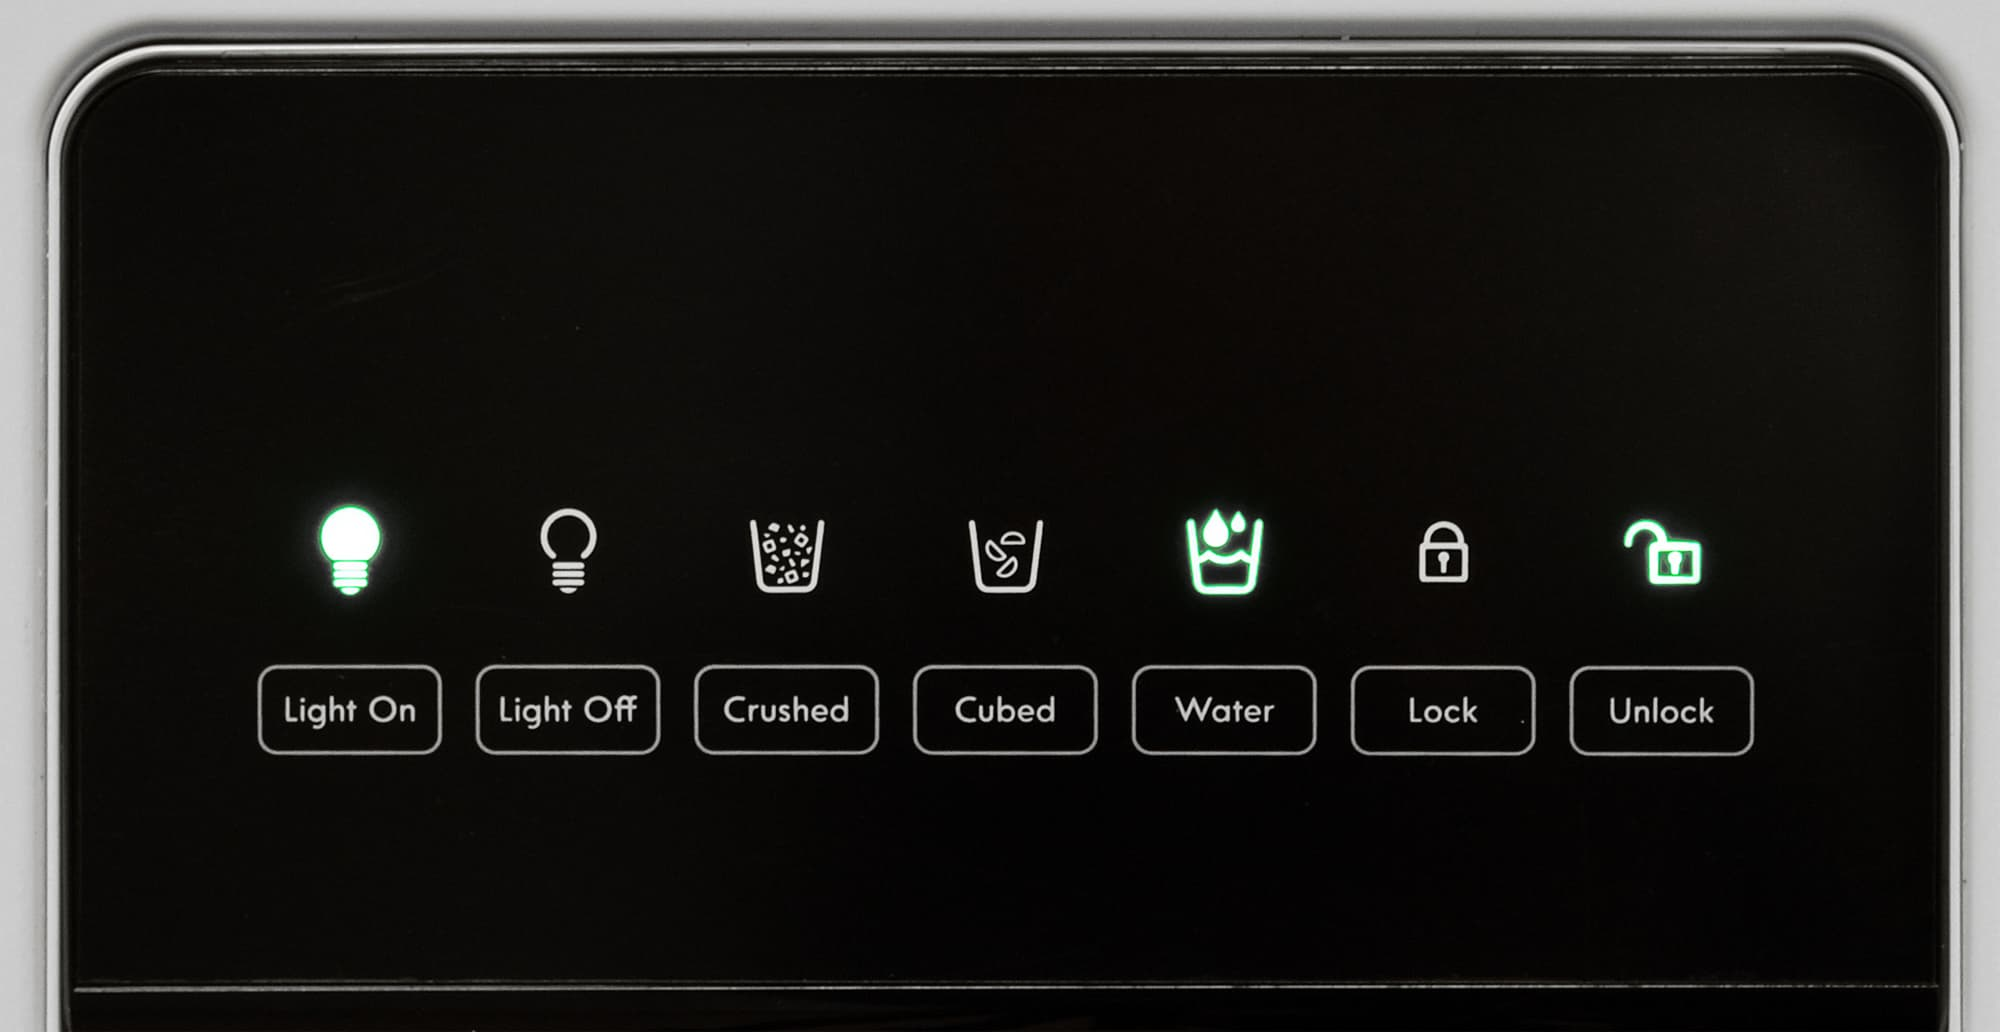 The Kenmore 51122's water controls look like a touch screen, but there are actually switches hidden behind that black plastic.